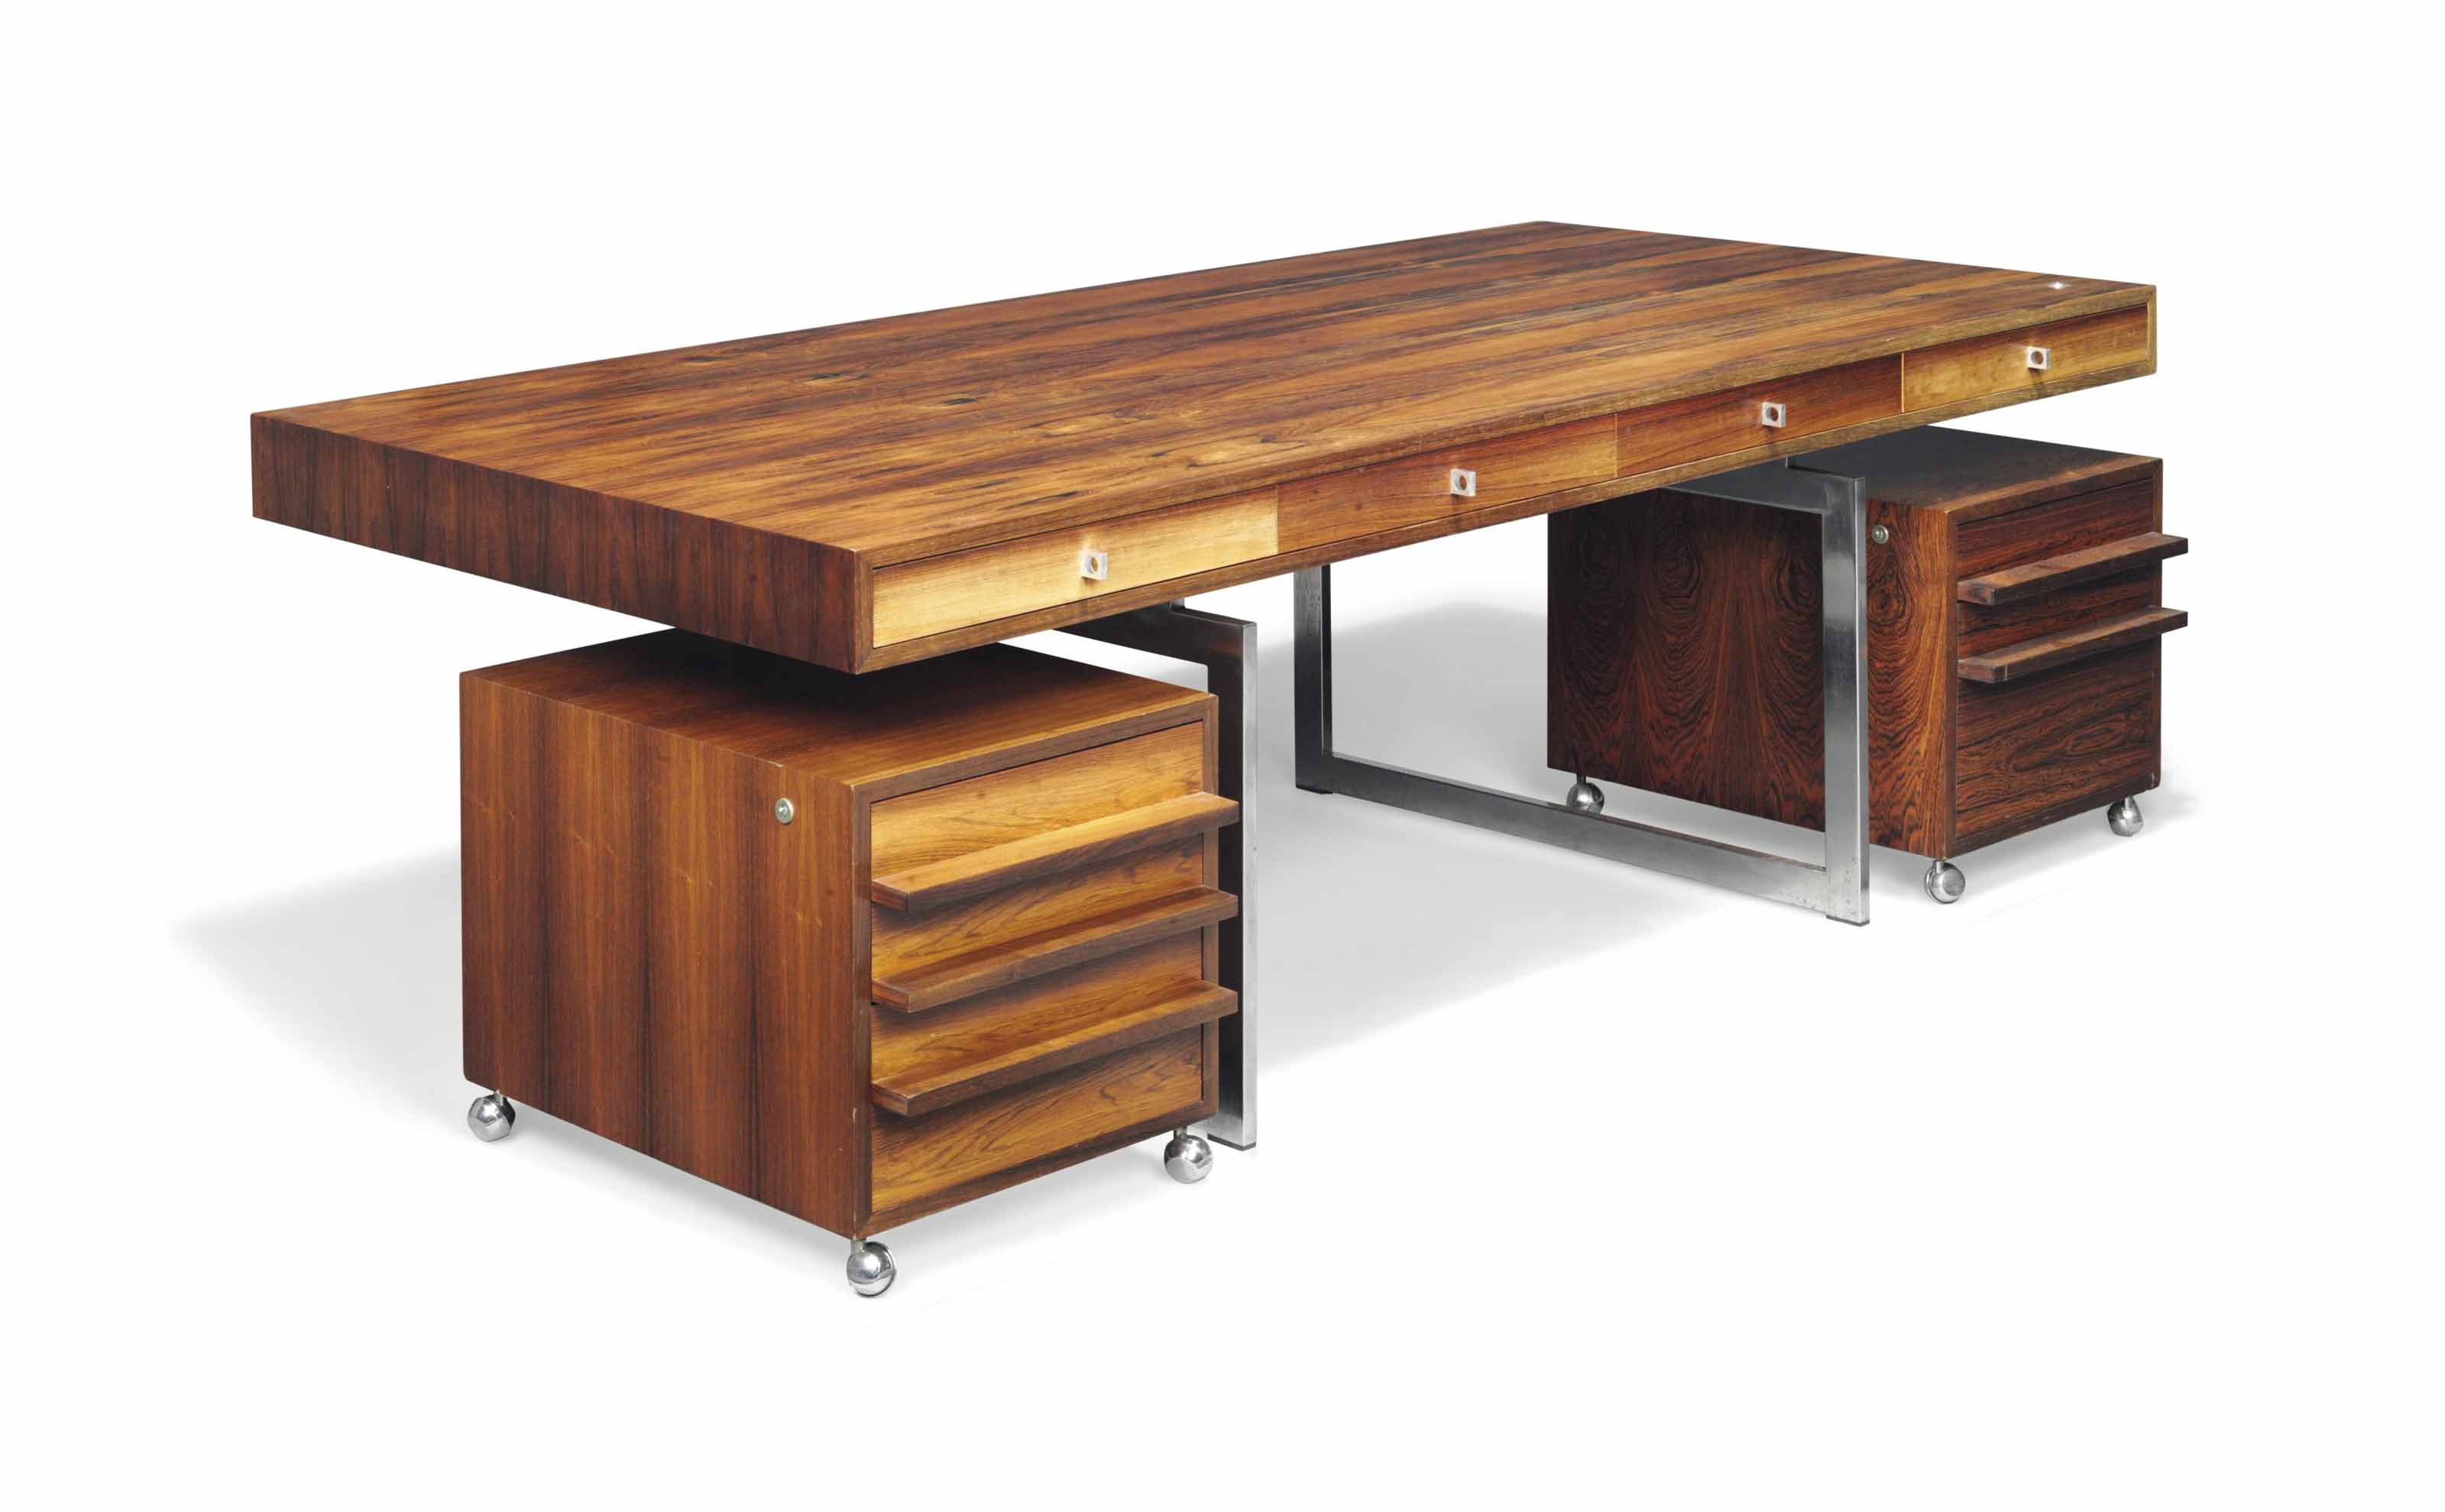 A BODIL KJAER (B. 1932) BRAZILIAN ROSEWOOD DESK AND TWO CHEST OF DRAWERS